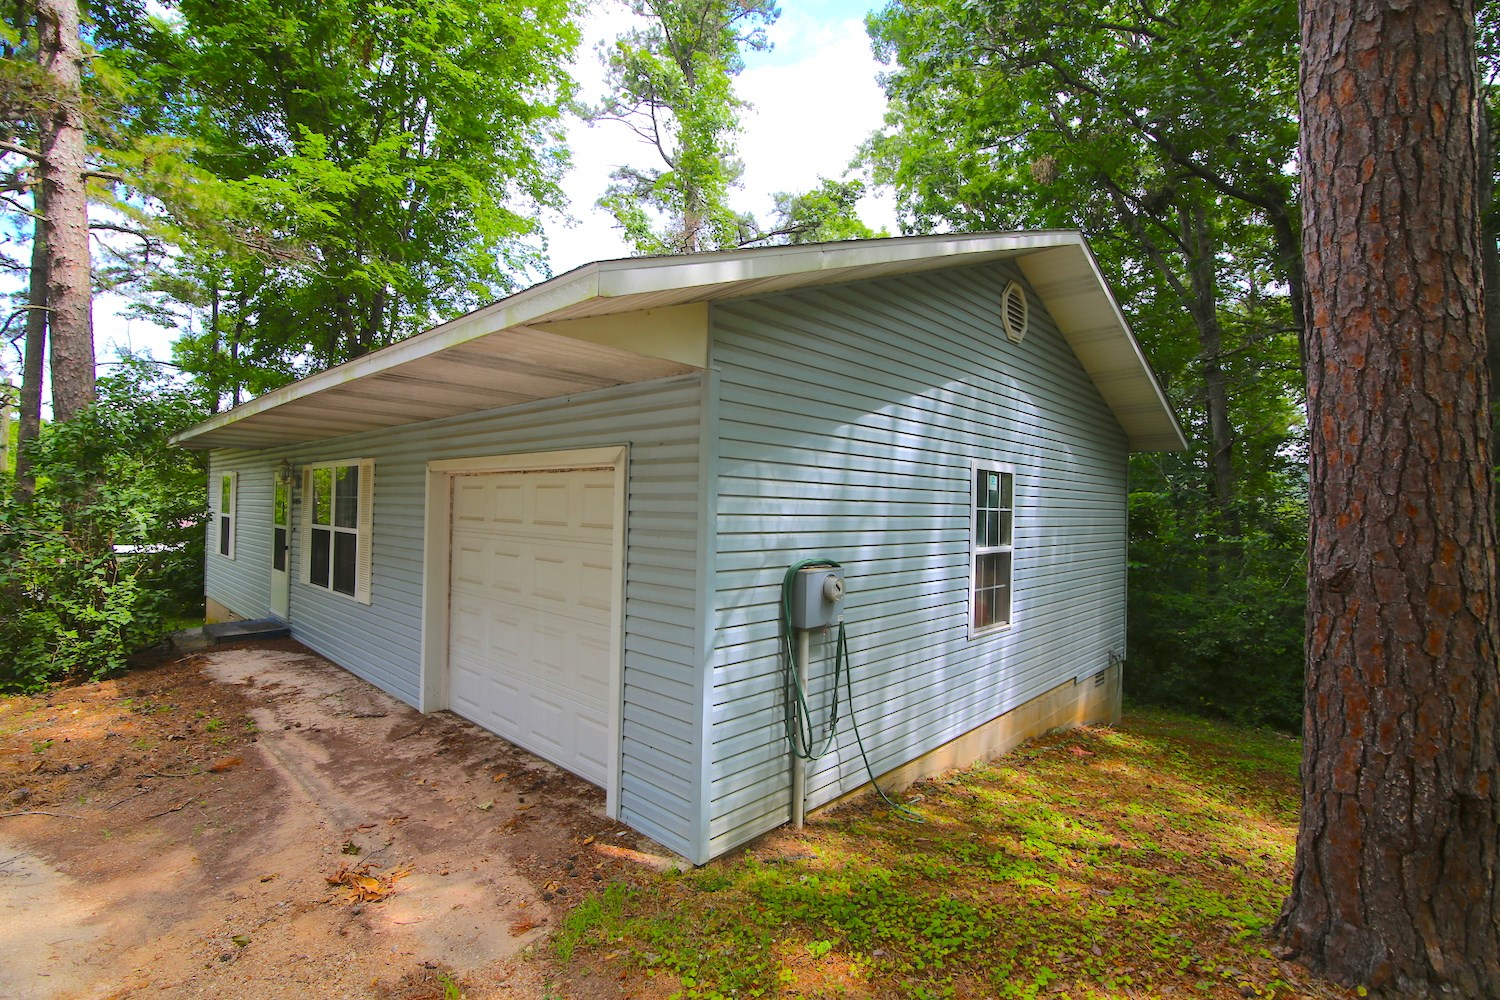 Home For Sale near Current River in Carter County Missouri